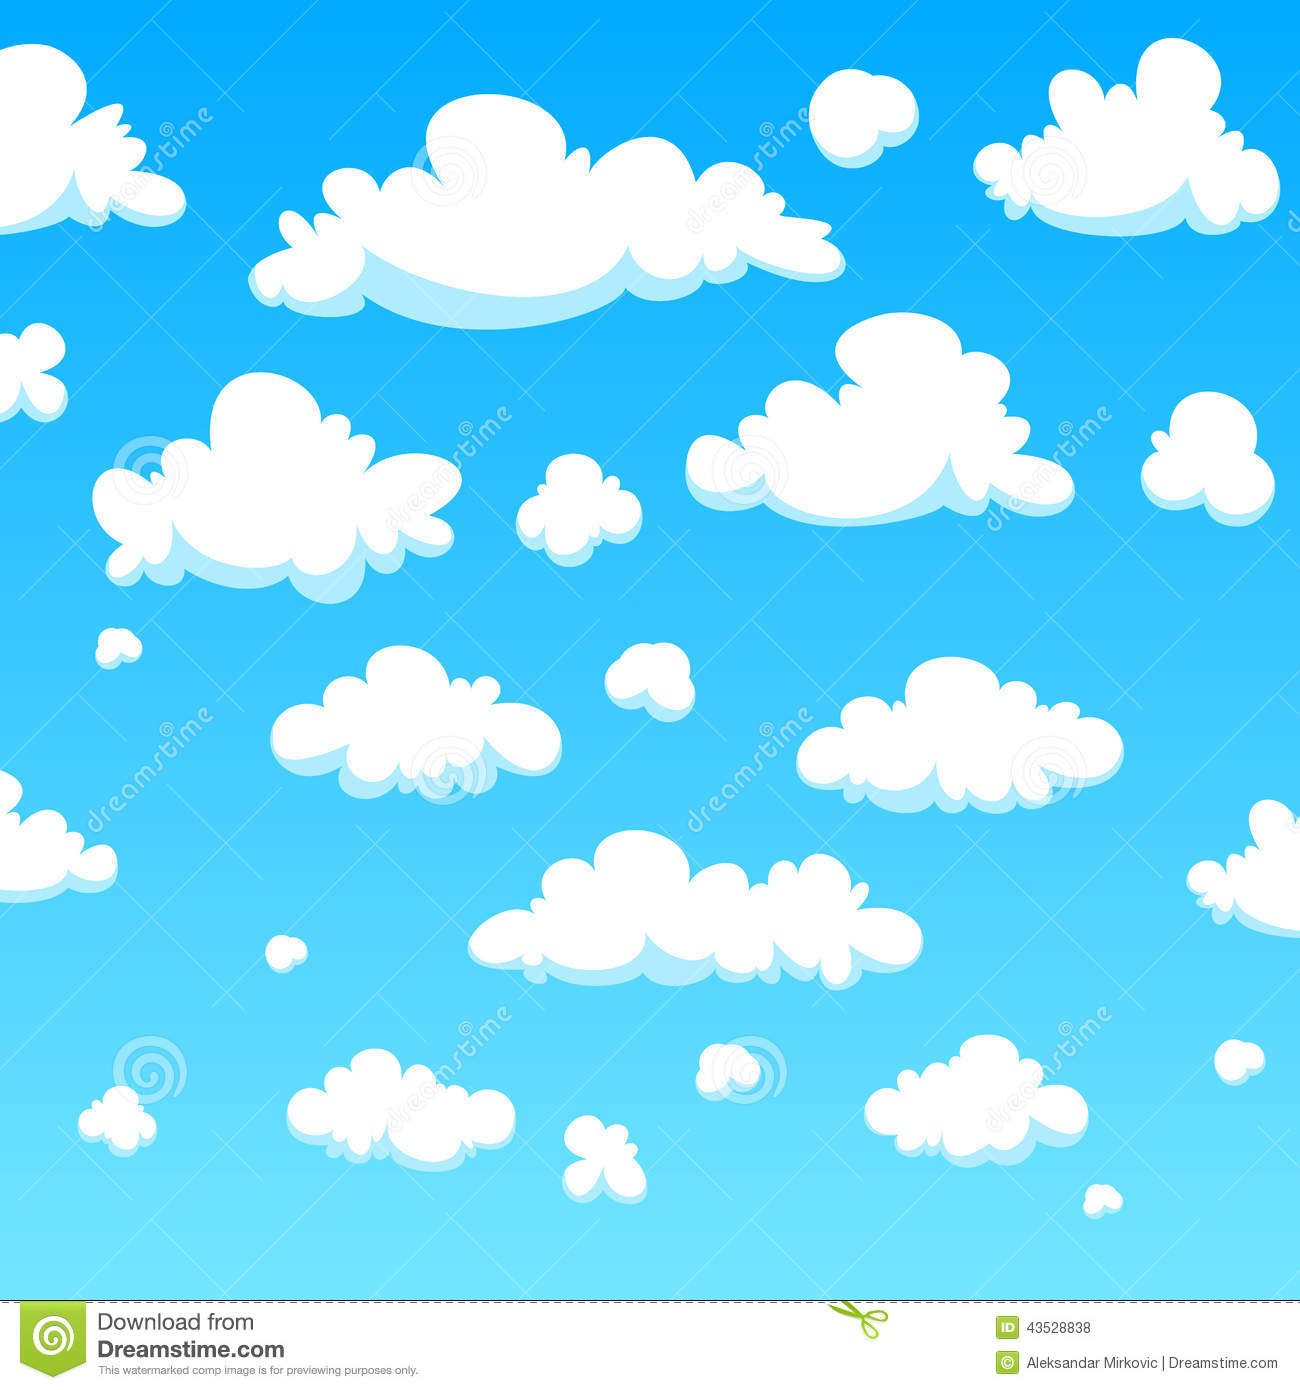 White cartoon clouds background, vector illustration.